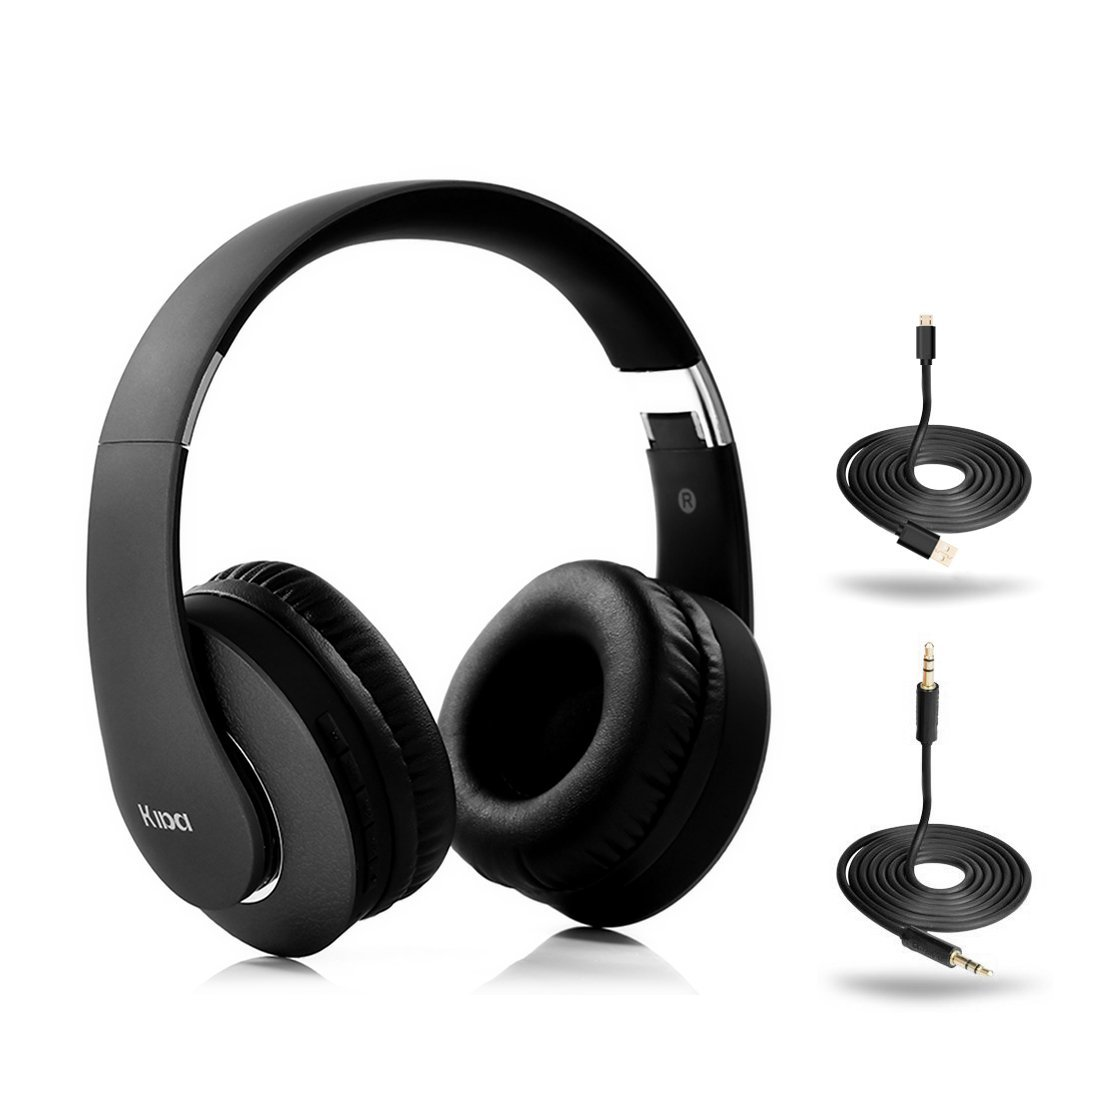 Bluetooth Headphones Wired Wireless Stereo Headset FM Radio MP3 Player Cell Phones PC Tablets TV MP3 Built-in Mic TF 3.5mm earphones and headphones bluetooth wireless sport handsfree with microphone fm radio mp3 player tf card wired stereo headset